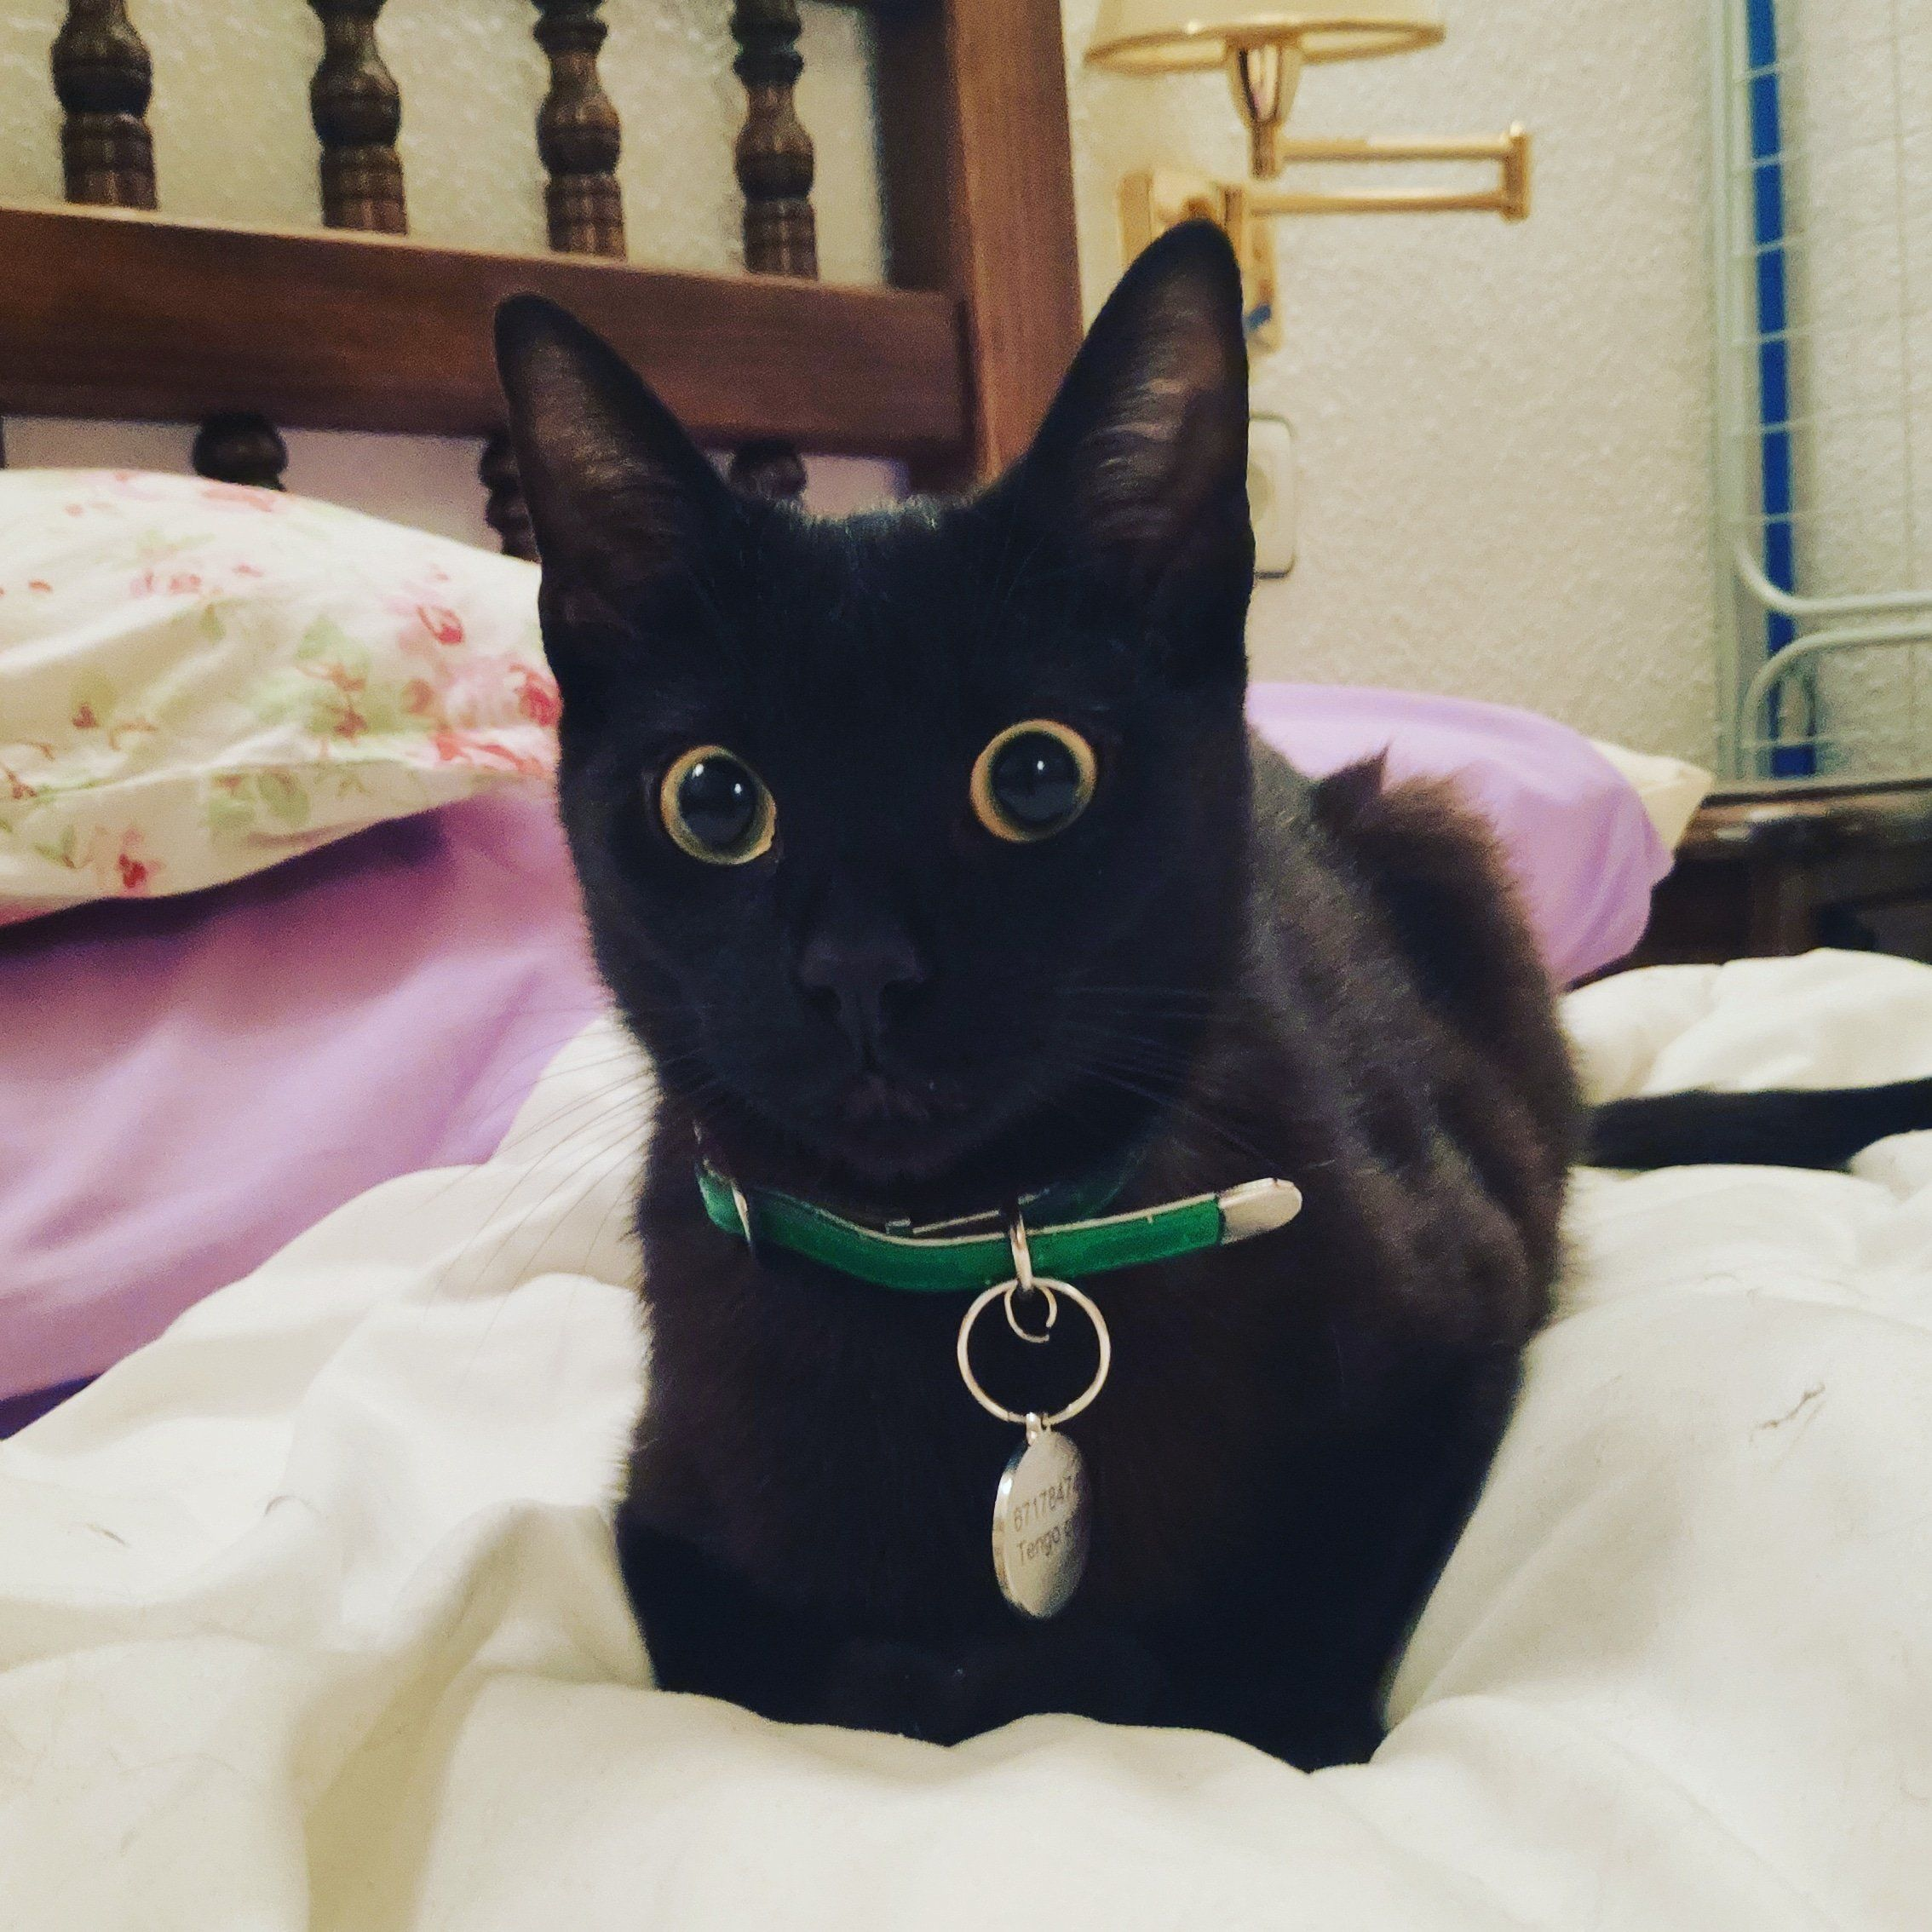 One Of My Rescues Salem Satan Despite The Name Pure Love Cats Catscatscats Catsofgram Catsdaily Catslove Cute Puppies And Kittens Cute Cats Cute Dogs